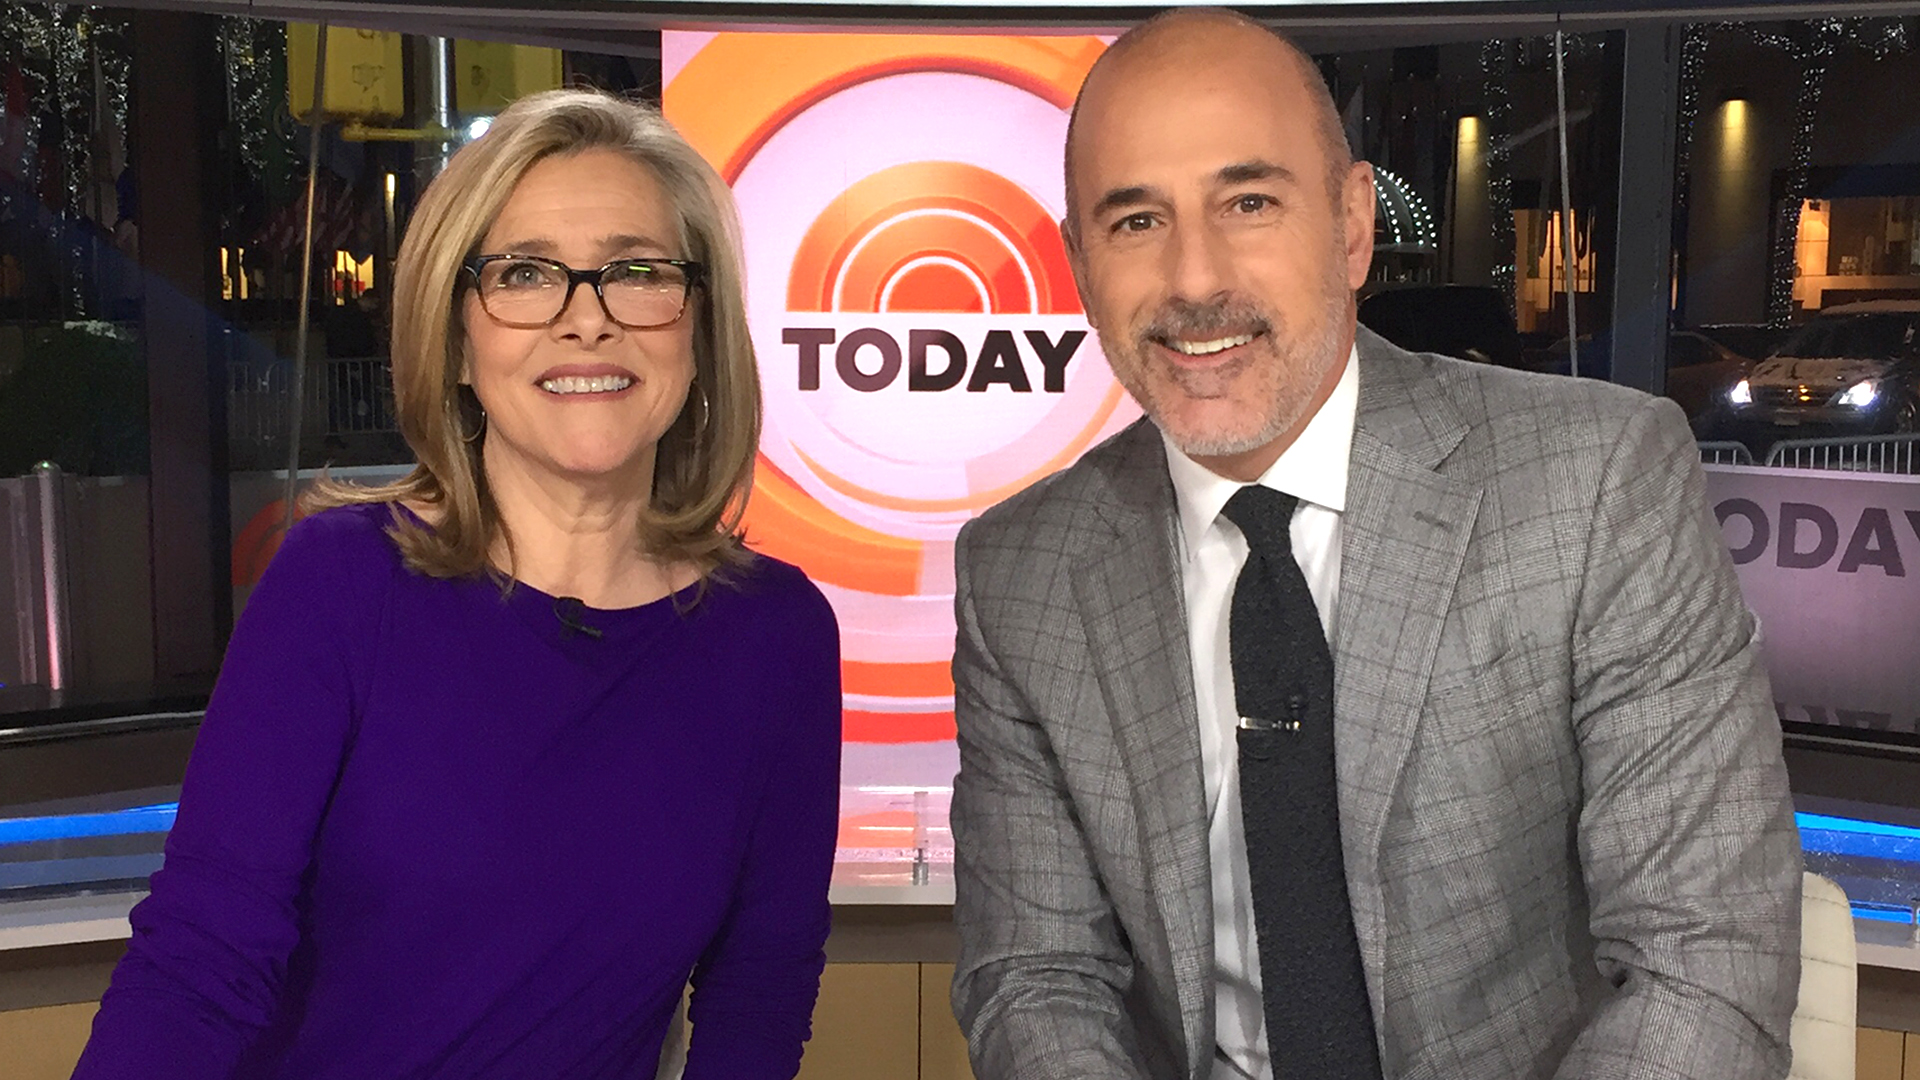 meredith vieira 2018meredith vieira husband, meredith vieira net worth, meredith vieira height, meredith vieira, meredith vieira show, meredith vieira feet, meredith vieira wiki, meredith vieira productions, meredith vieira who wants to be a millionaire, meredith vieira age, meredith vieira family, meredith vieira daughter, meredith vieira instagram, meredith vieira book list, meredith vieira matt lauer, meredith vieira young, meredith vieira husband health, meredith vieira 2018, meredith vieira assistant, meredith vieira great american read